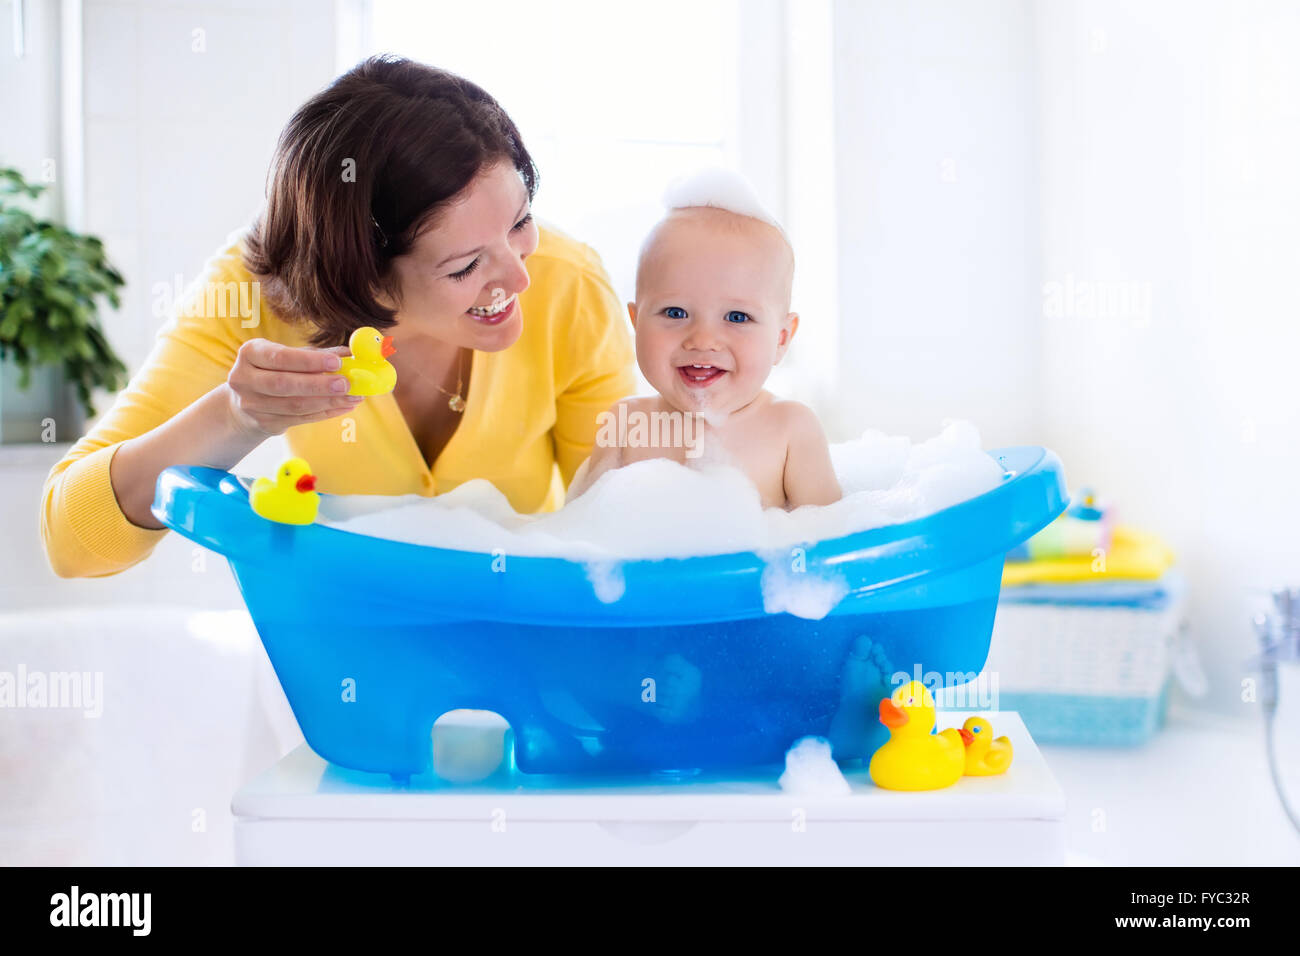 Parent Taking Bath With Child Stock Photos & Parent Taking Bath With ...